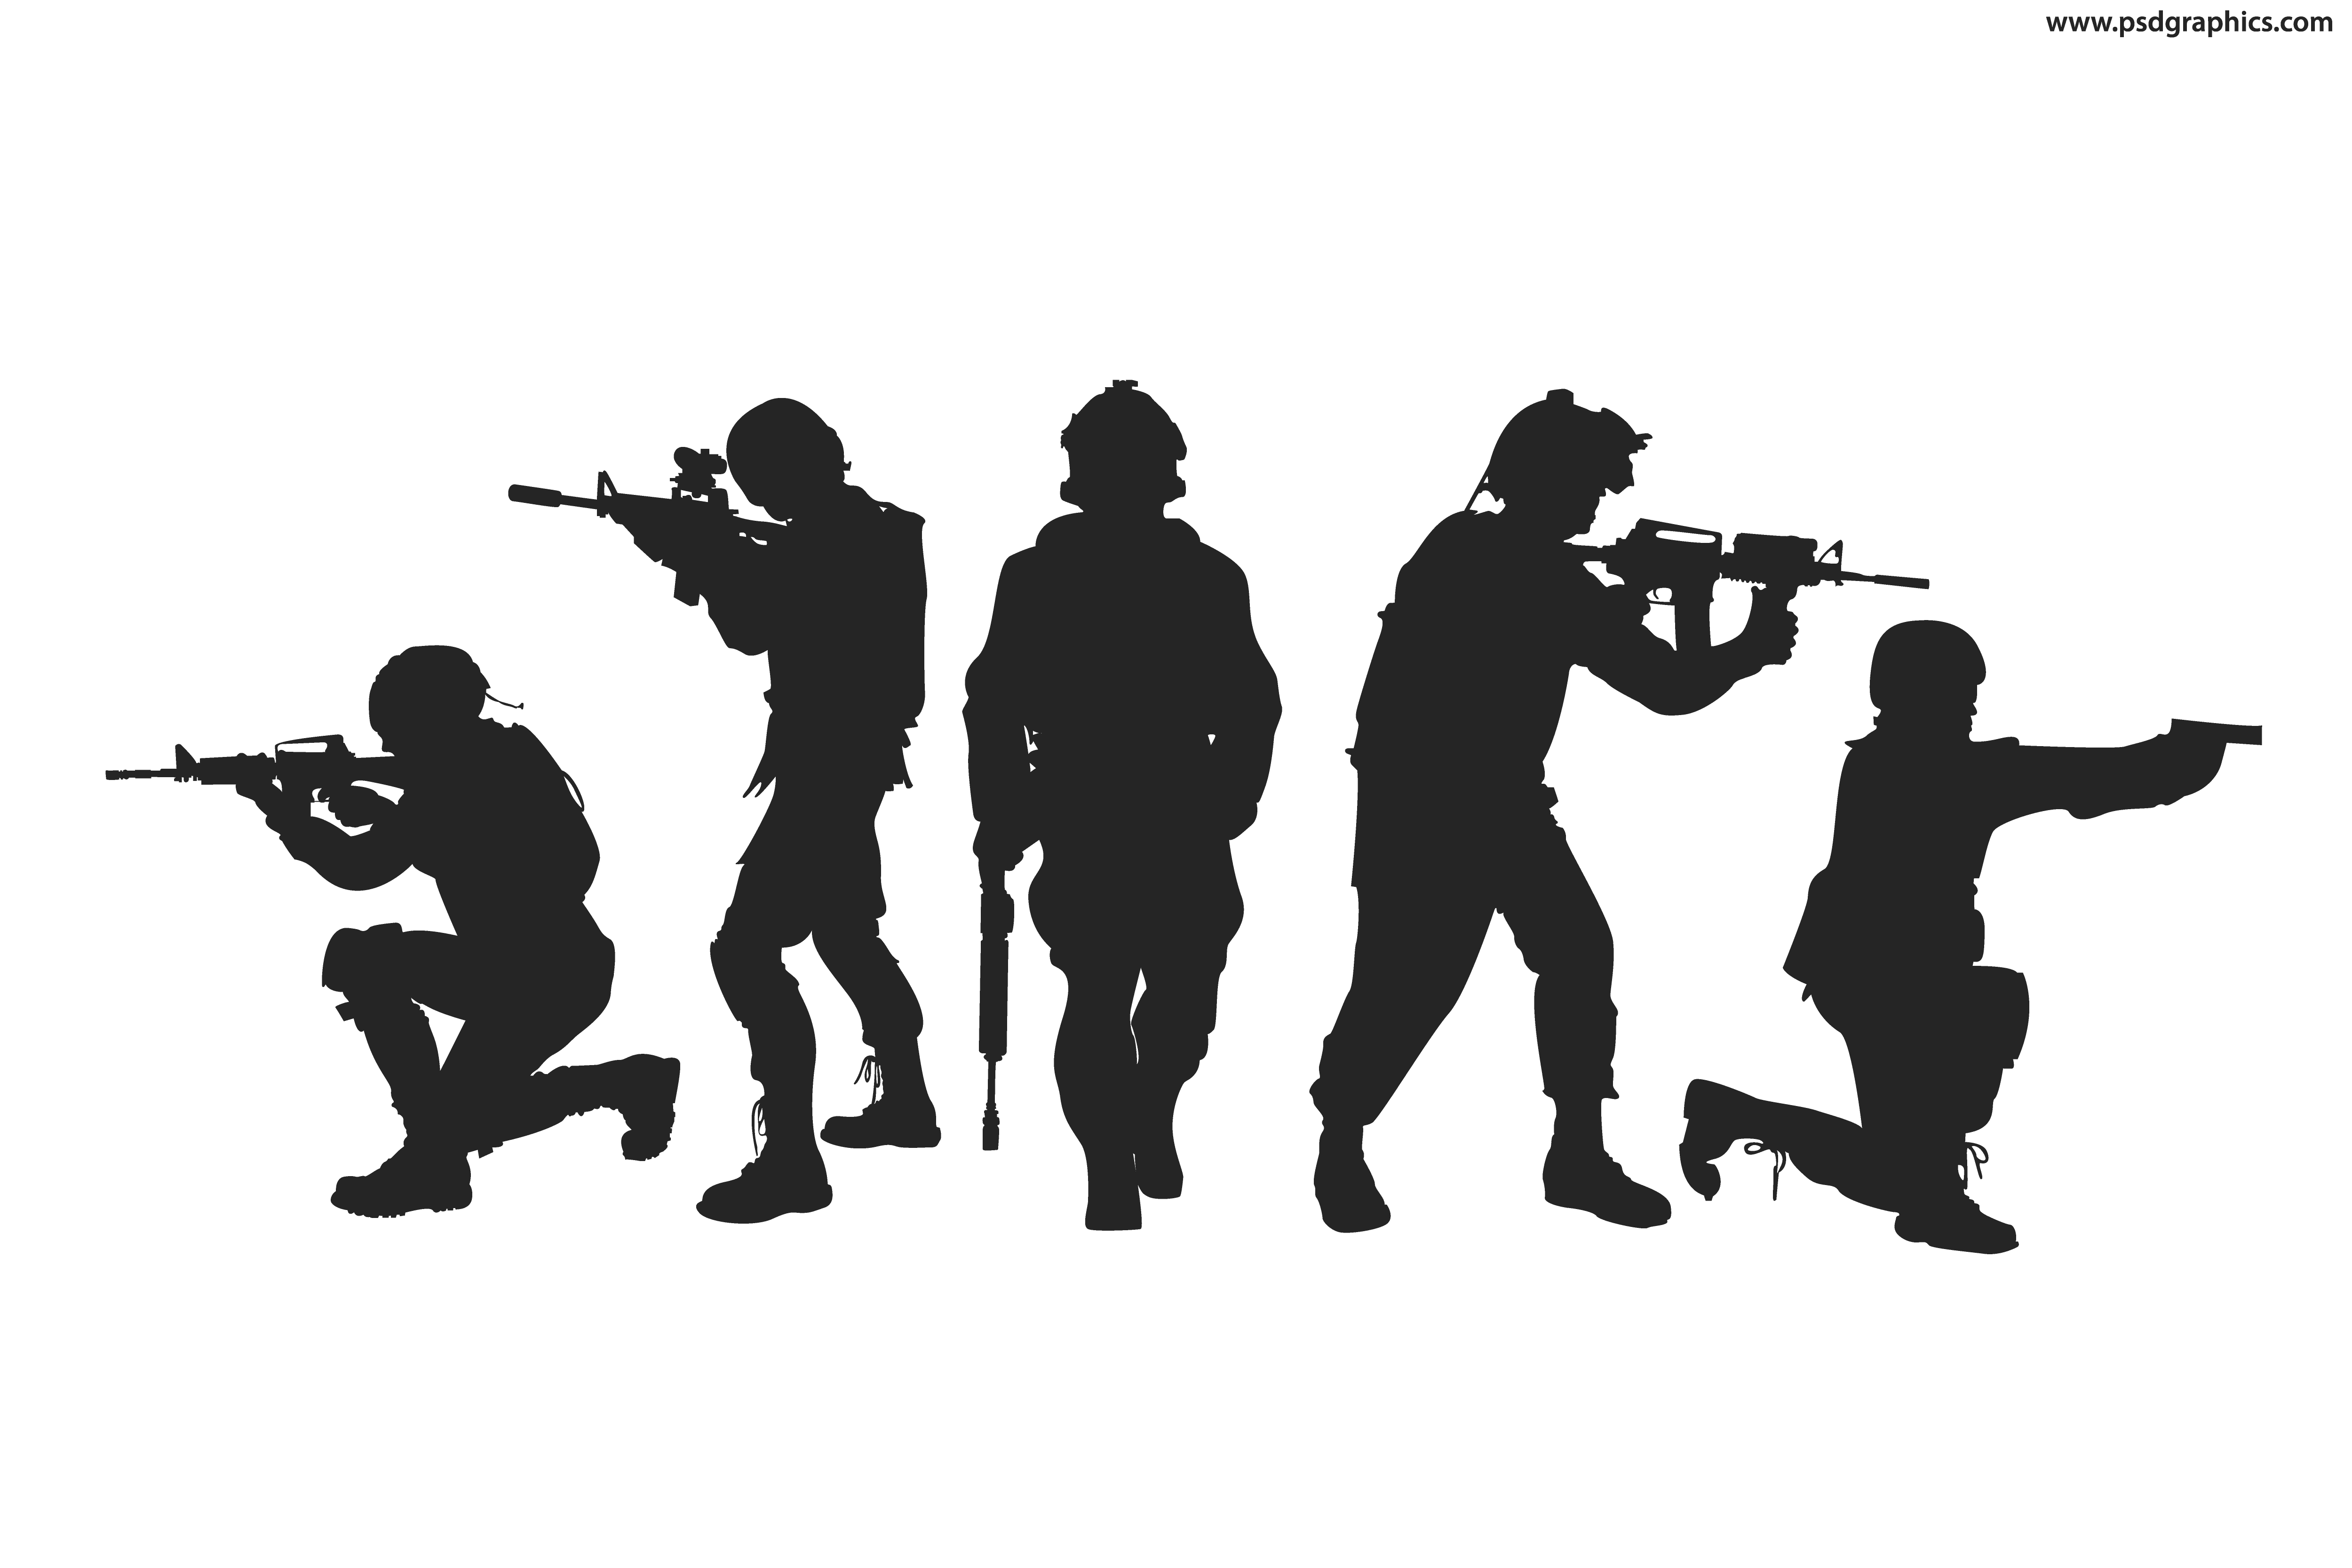 Army silhouette png. Soldier military soldiers transprent